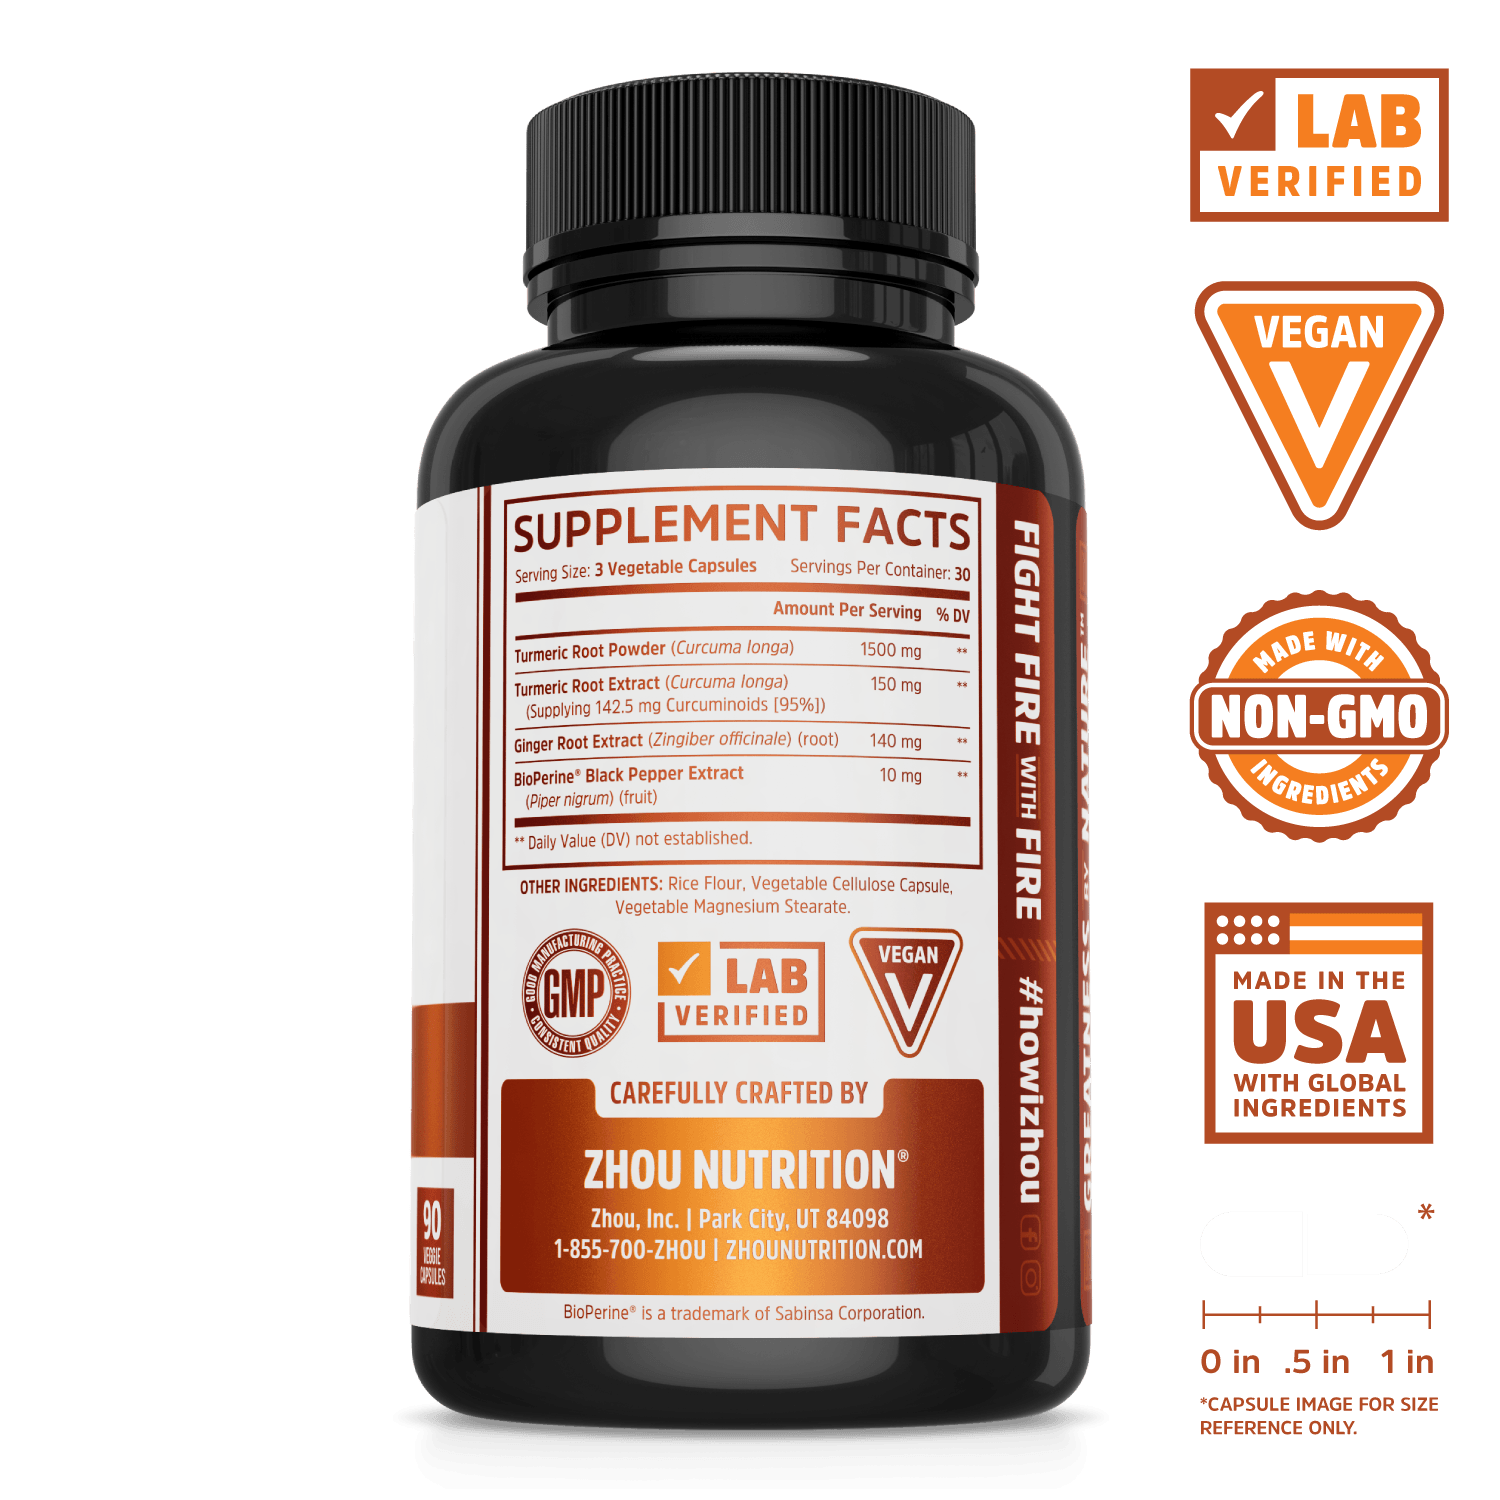 Zhou Nutrition Turmeric Curcumin to Support Mobility. Bottle side. Lab verified, vegan, made with non-GMO ingredients, made in the USA with global ingredients.